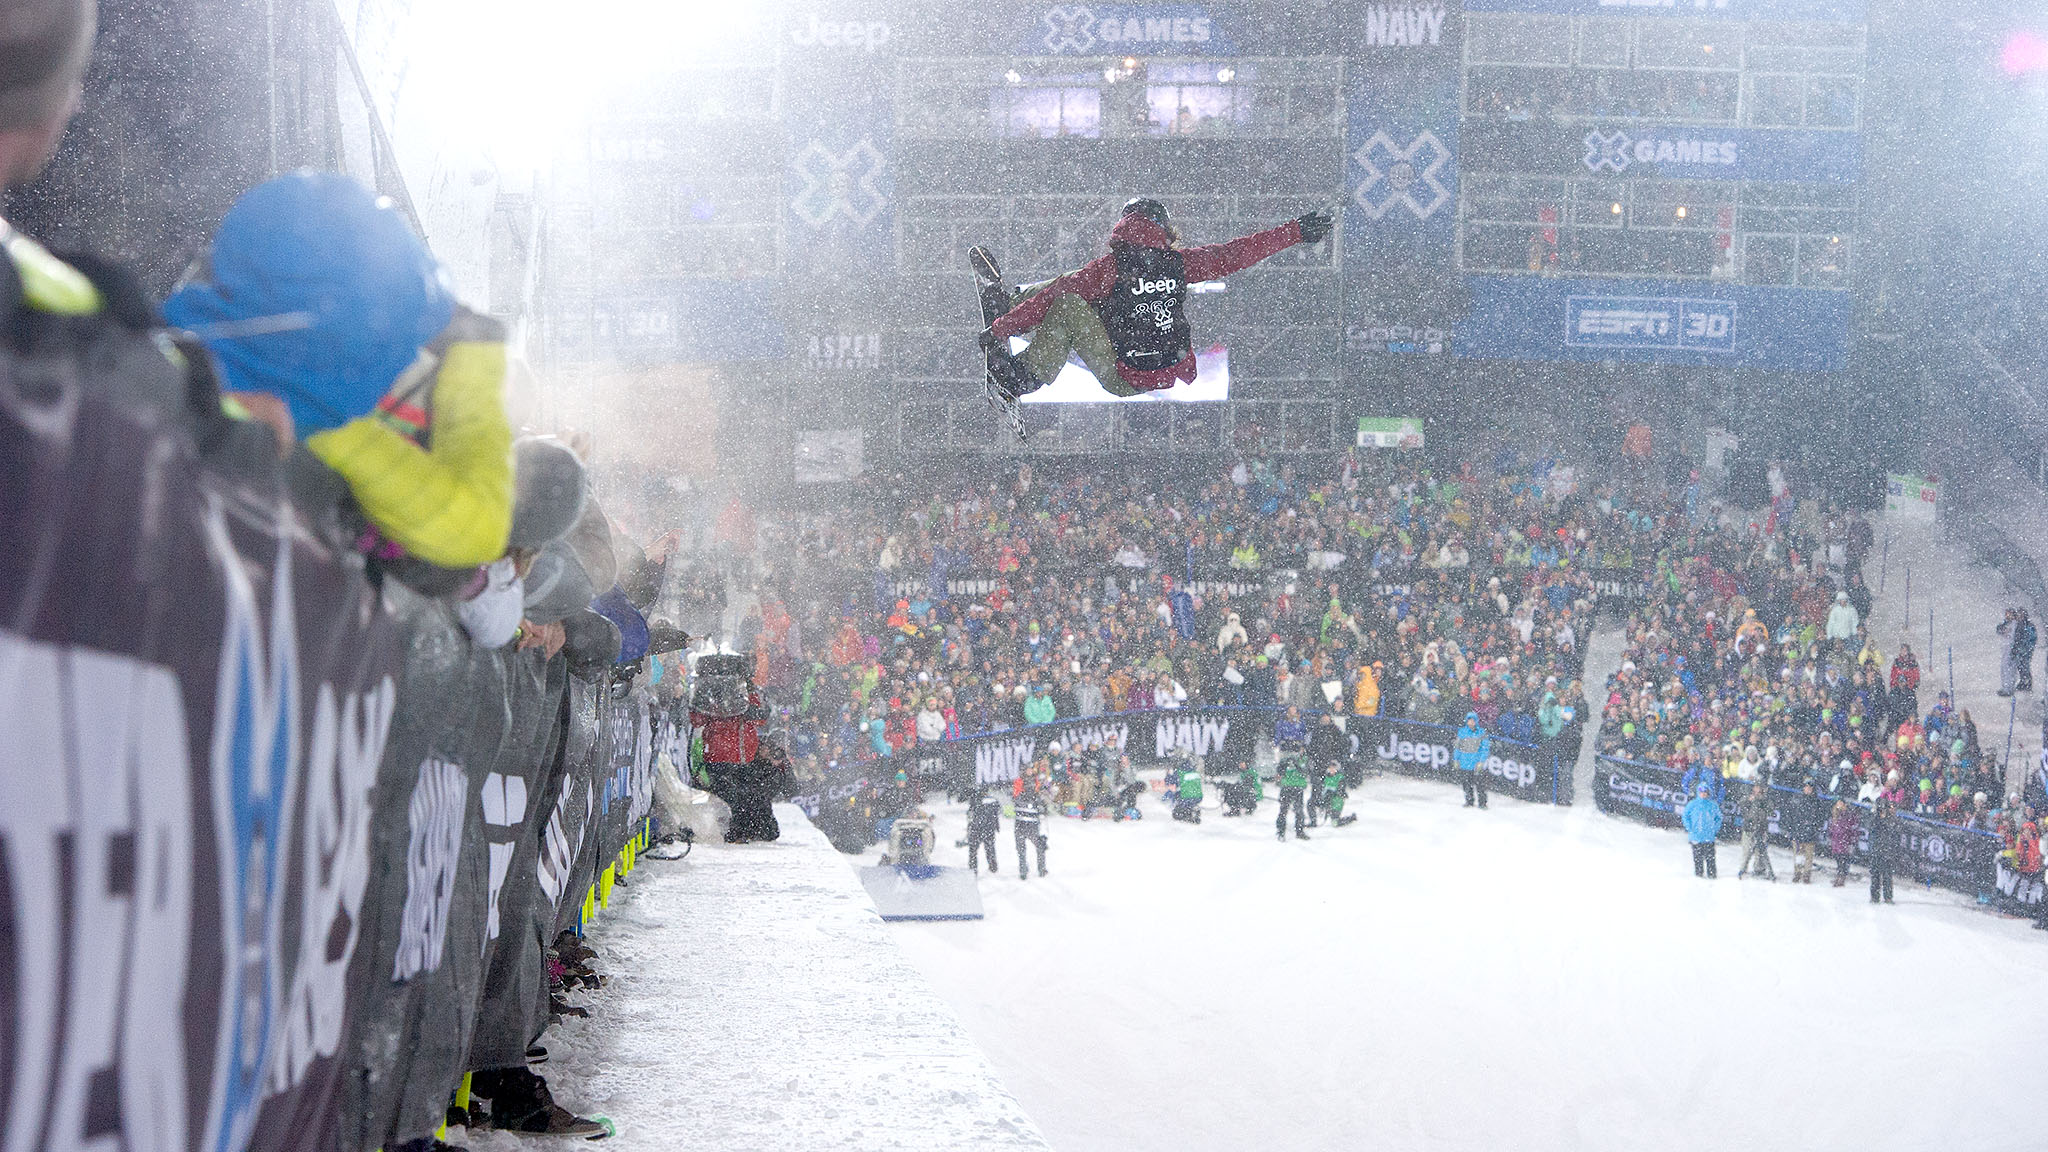 Kelly Clark won her third straight SuperPipe gold, edging Elena Hight by less than a point.